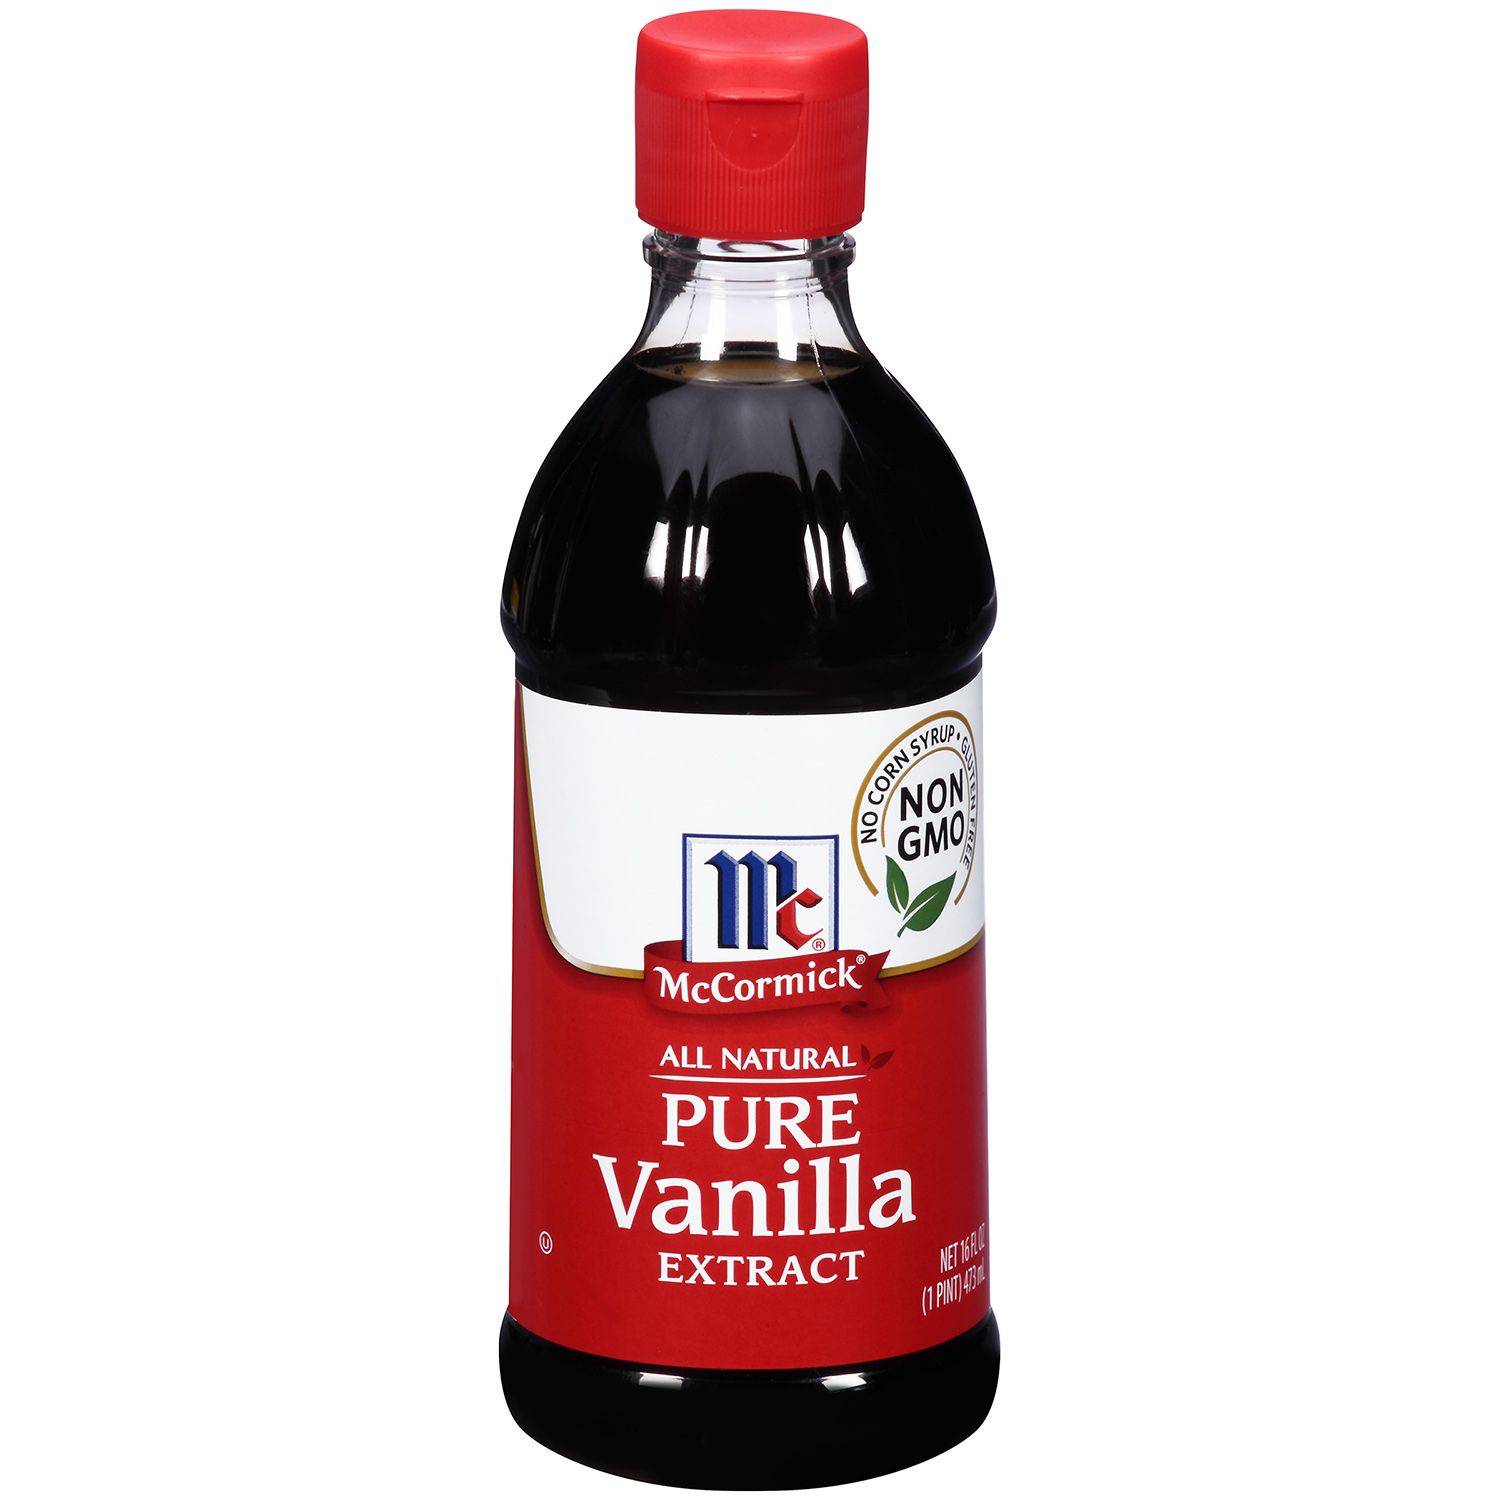 Details about McCormick Pure Vanilla Extract - 16 oz